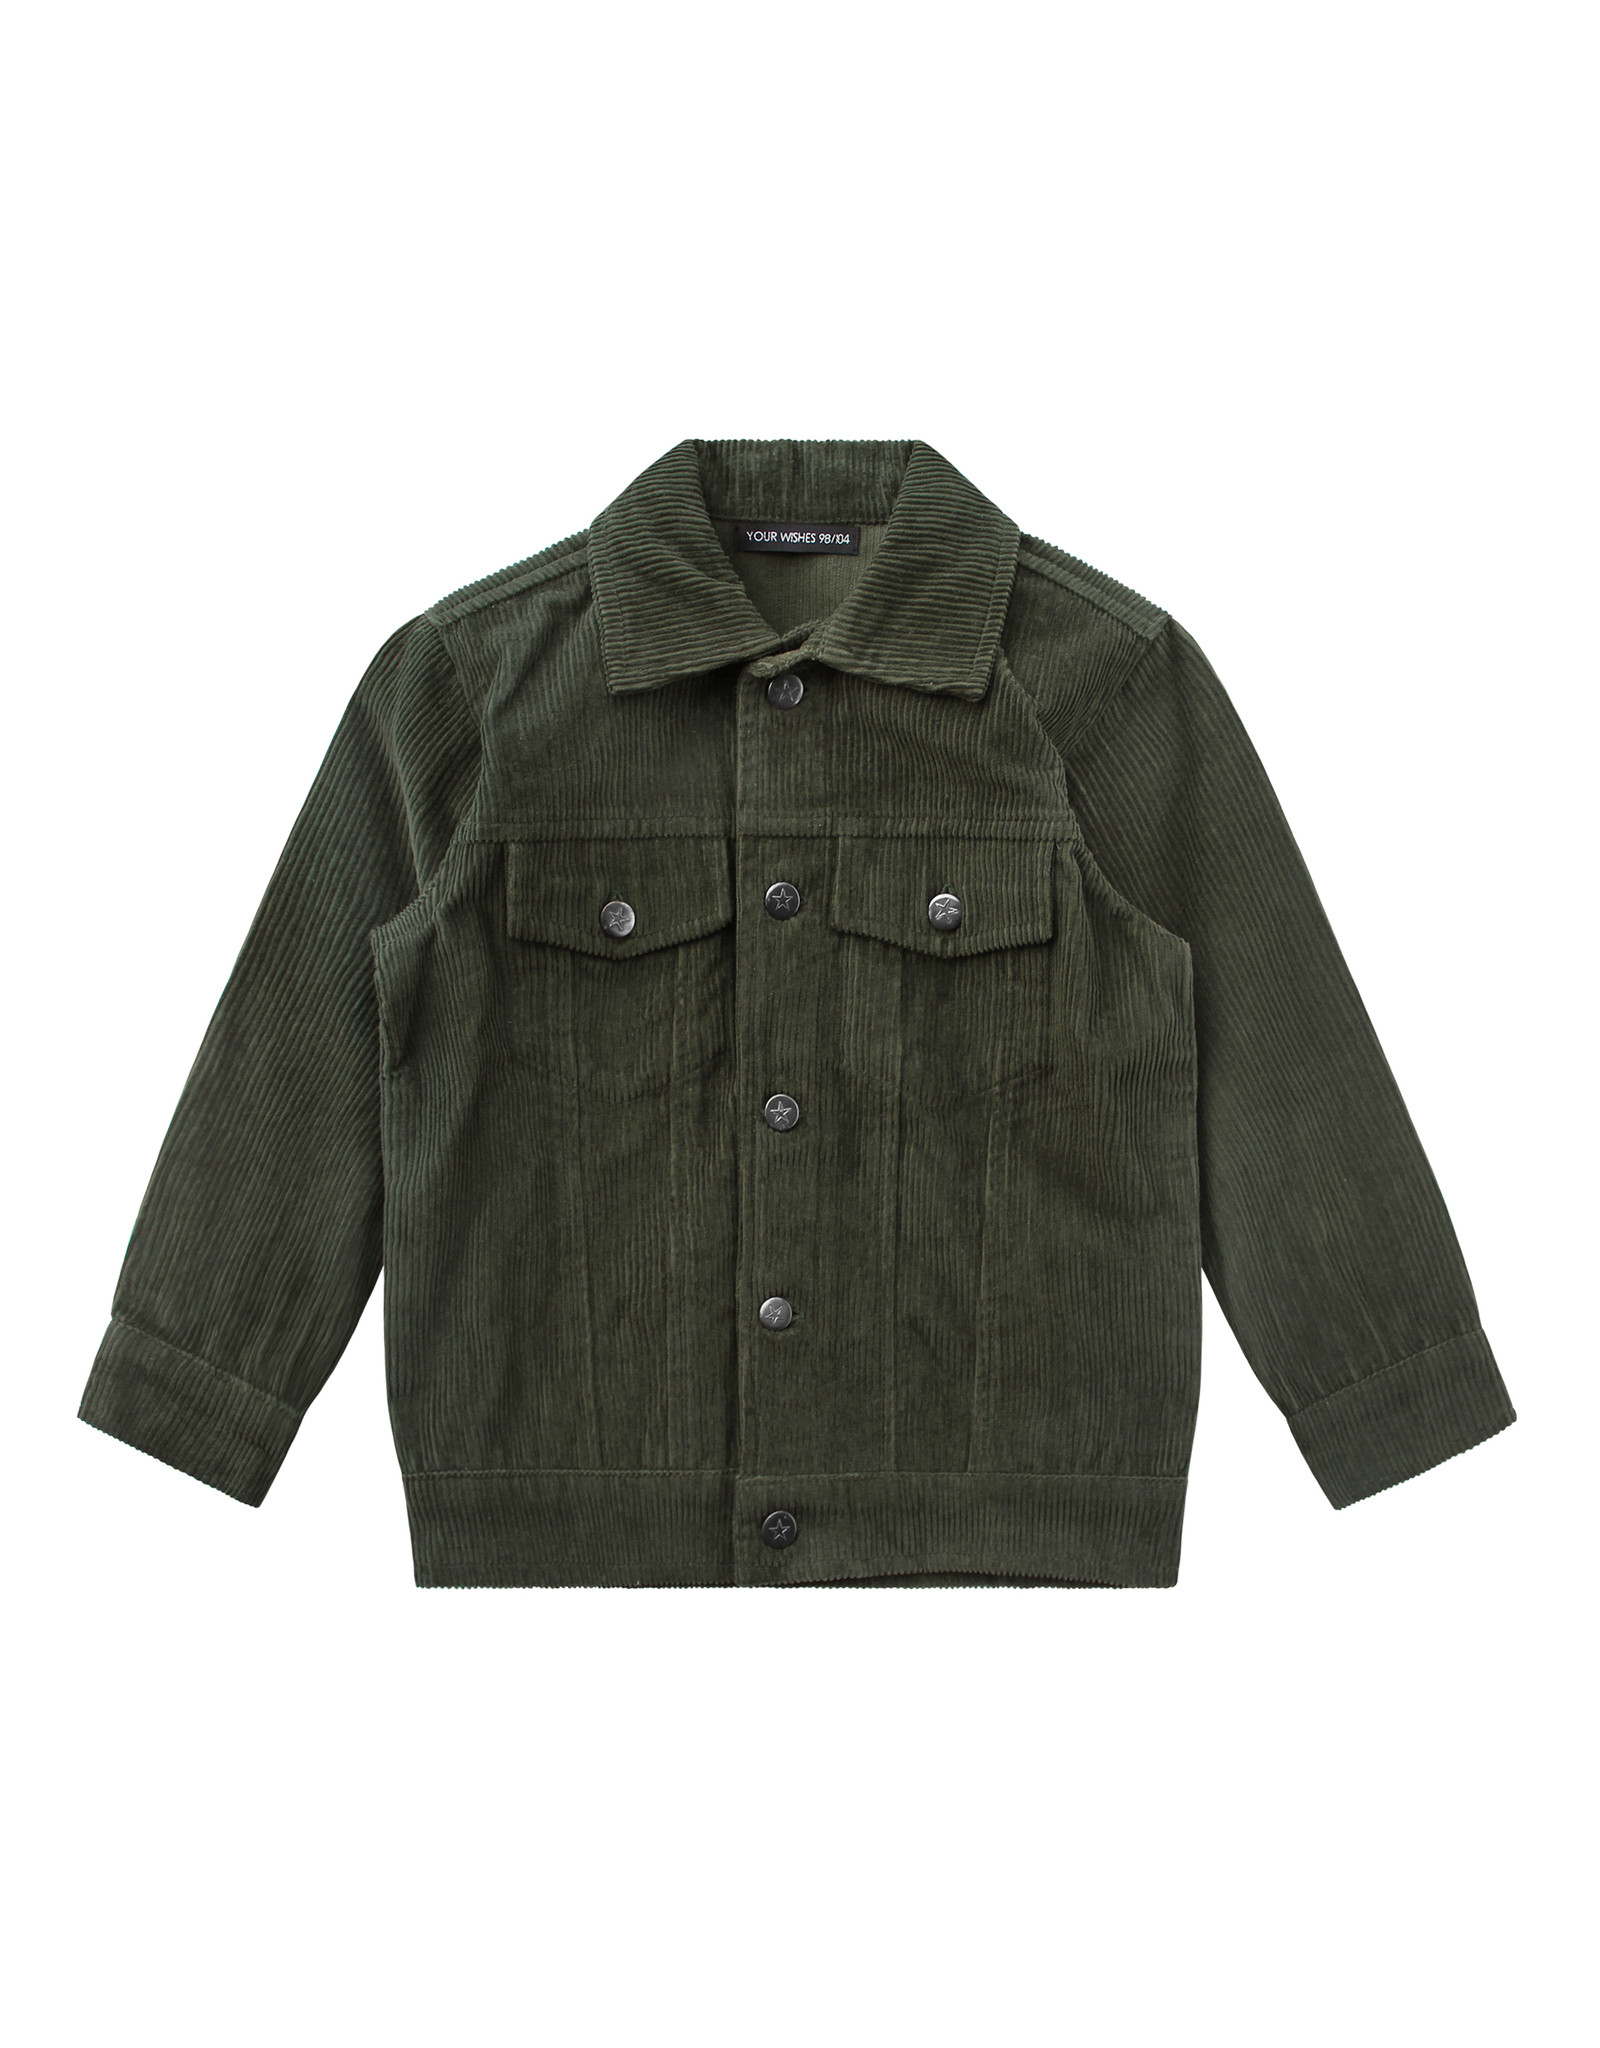 Your Wishes YW | Corduroy | Jacket | Desk Green